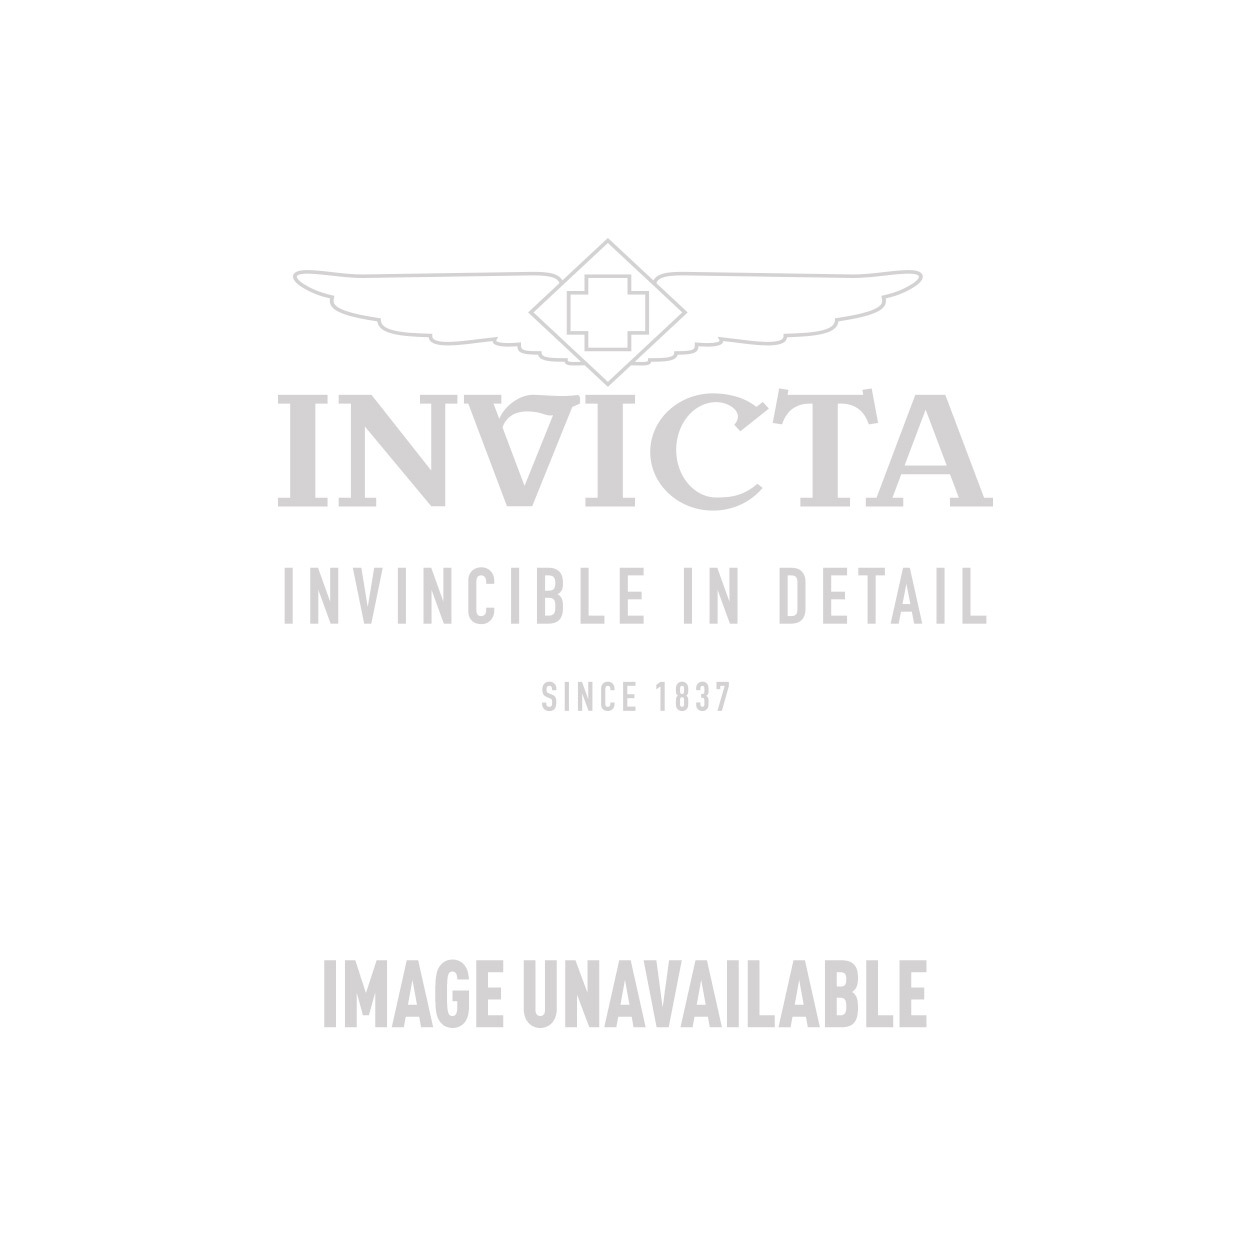 Invicta Specialty Quartz Watch - Stainless Steel case Stainless Steel band - Model 14875